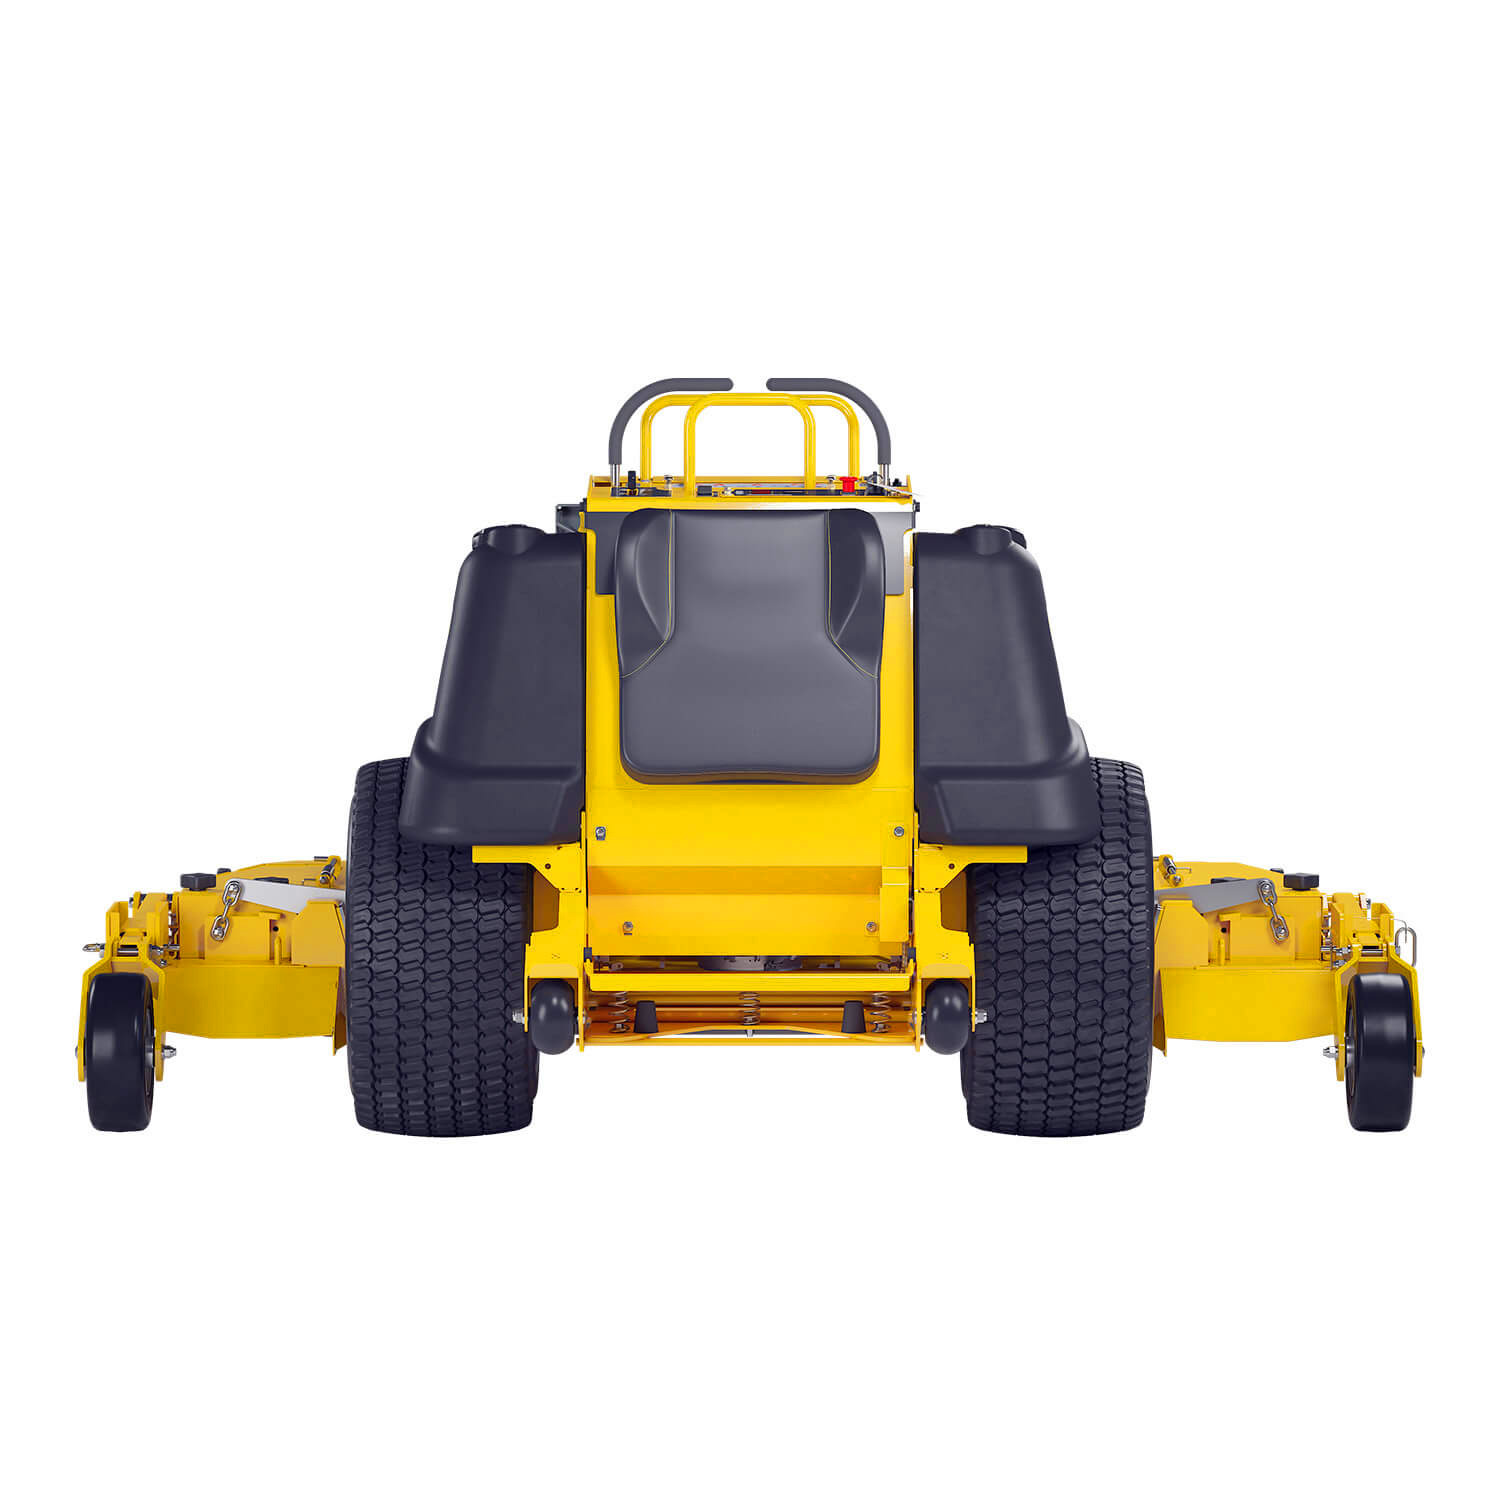 Image of the rear of a yellow stand-on mower